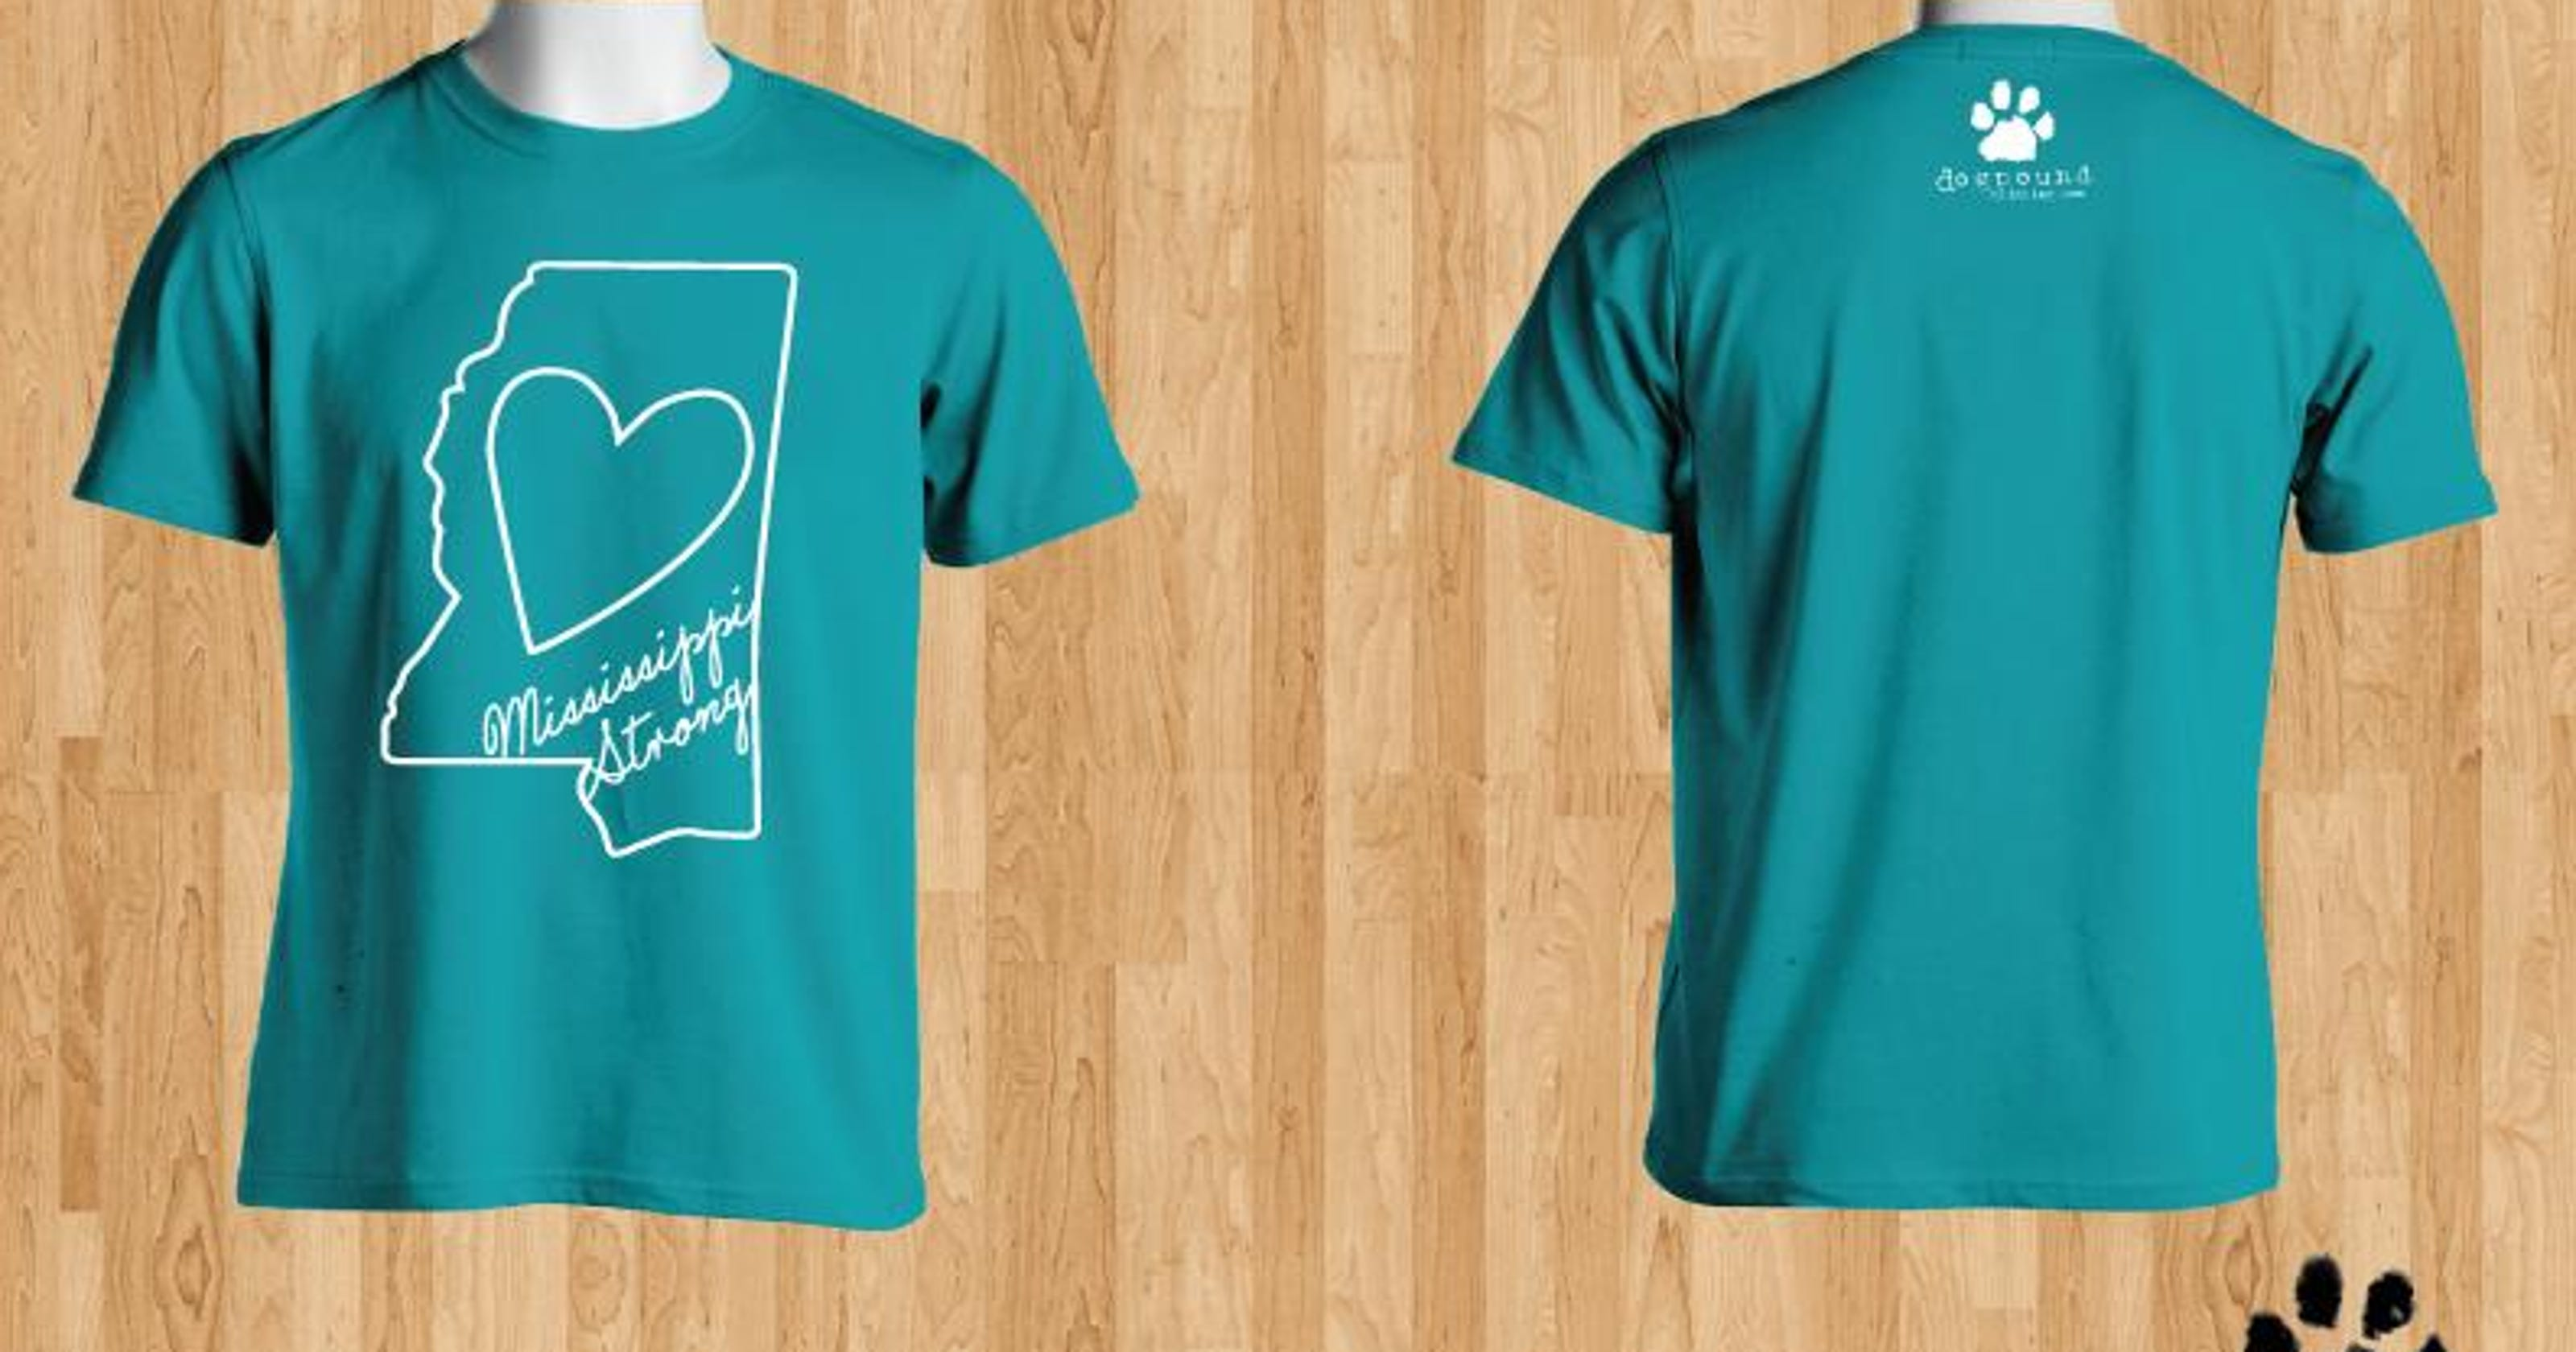 Shirt Designs Are Mississippi Strong